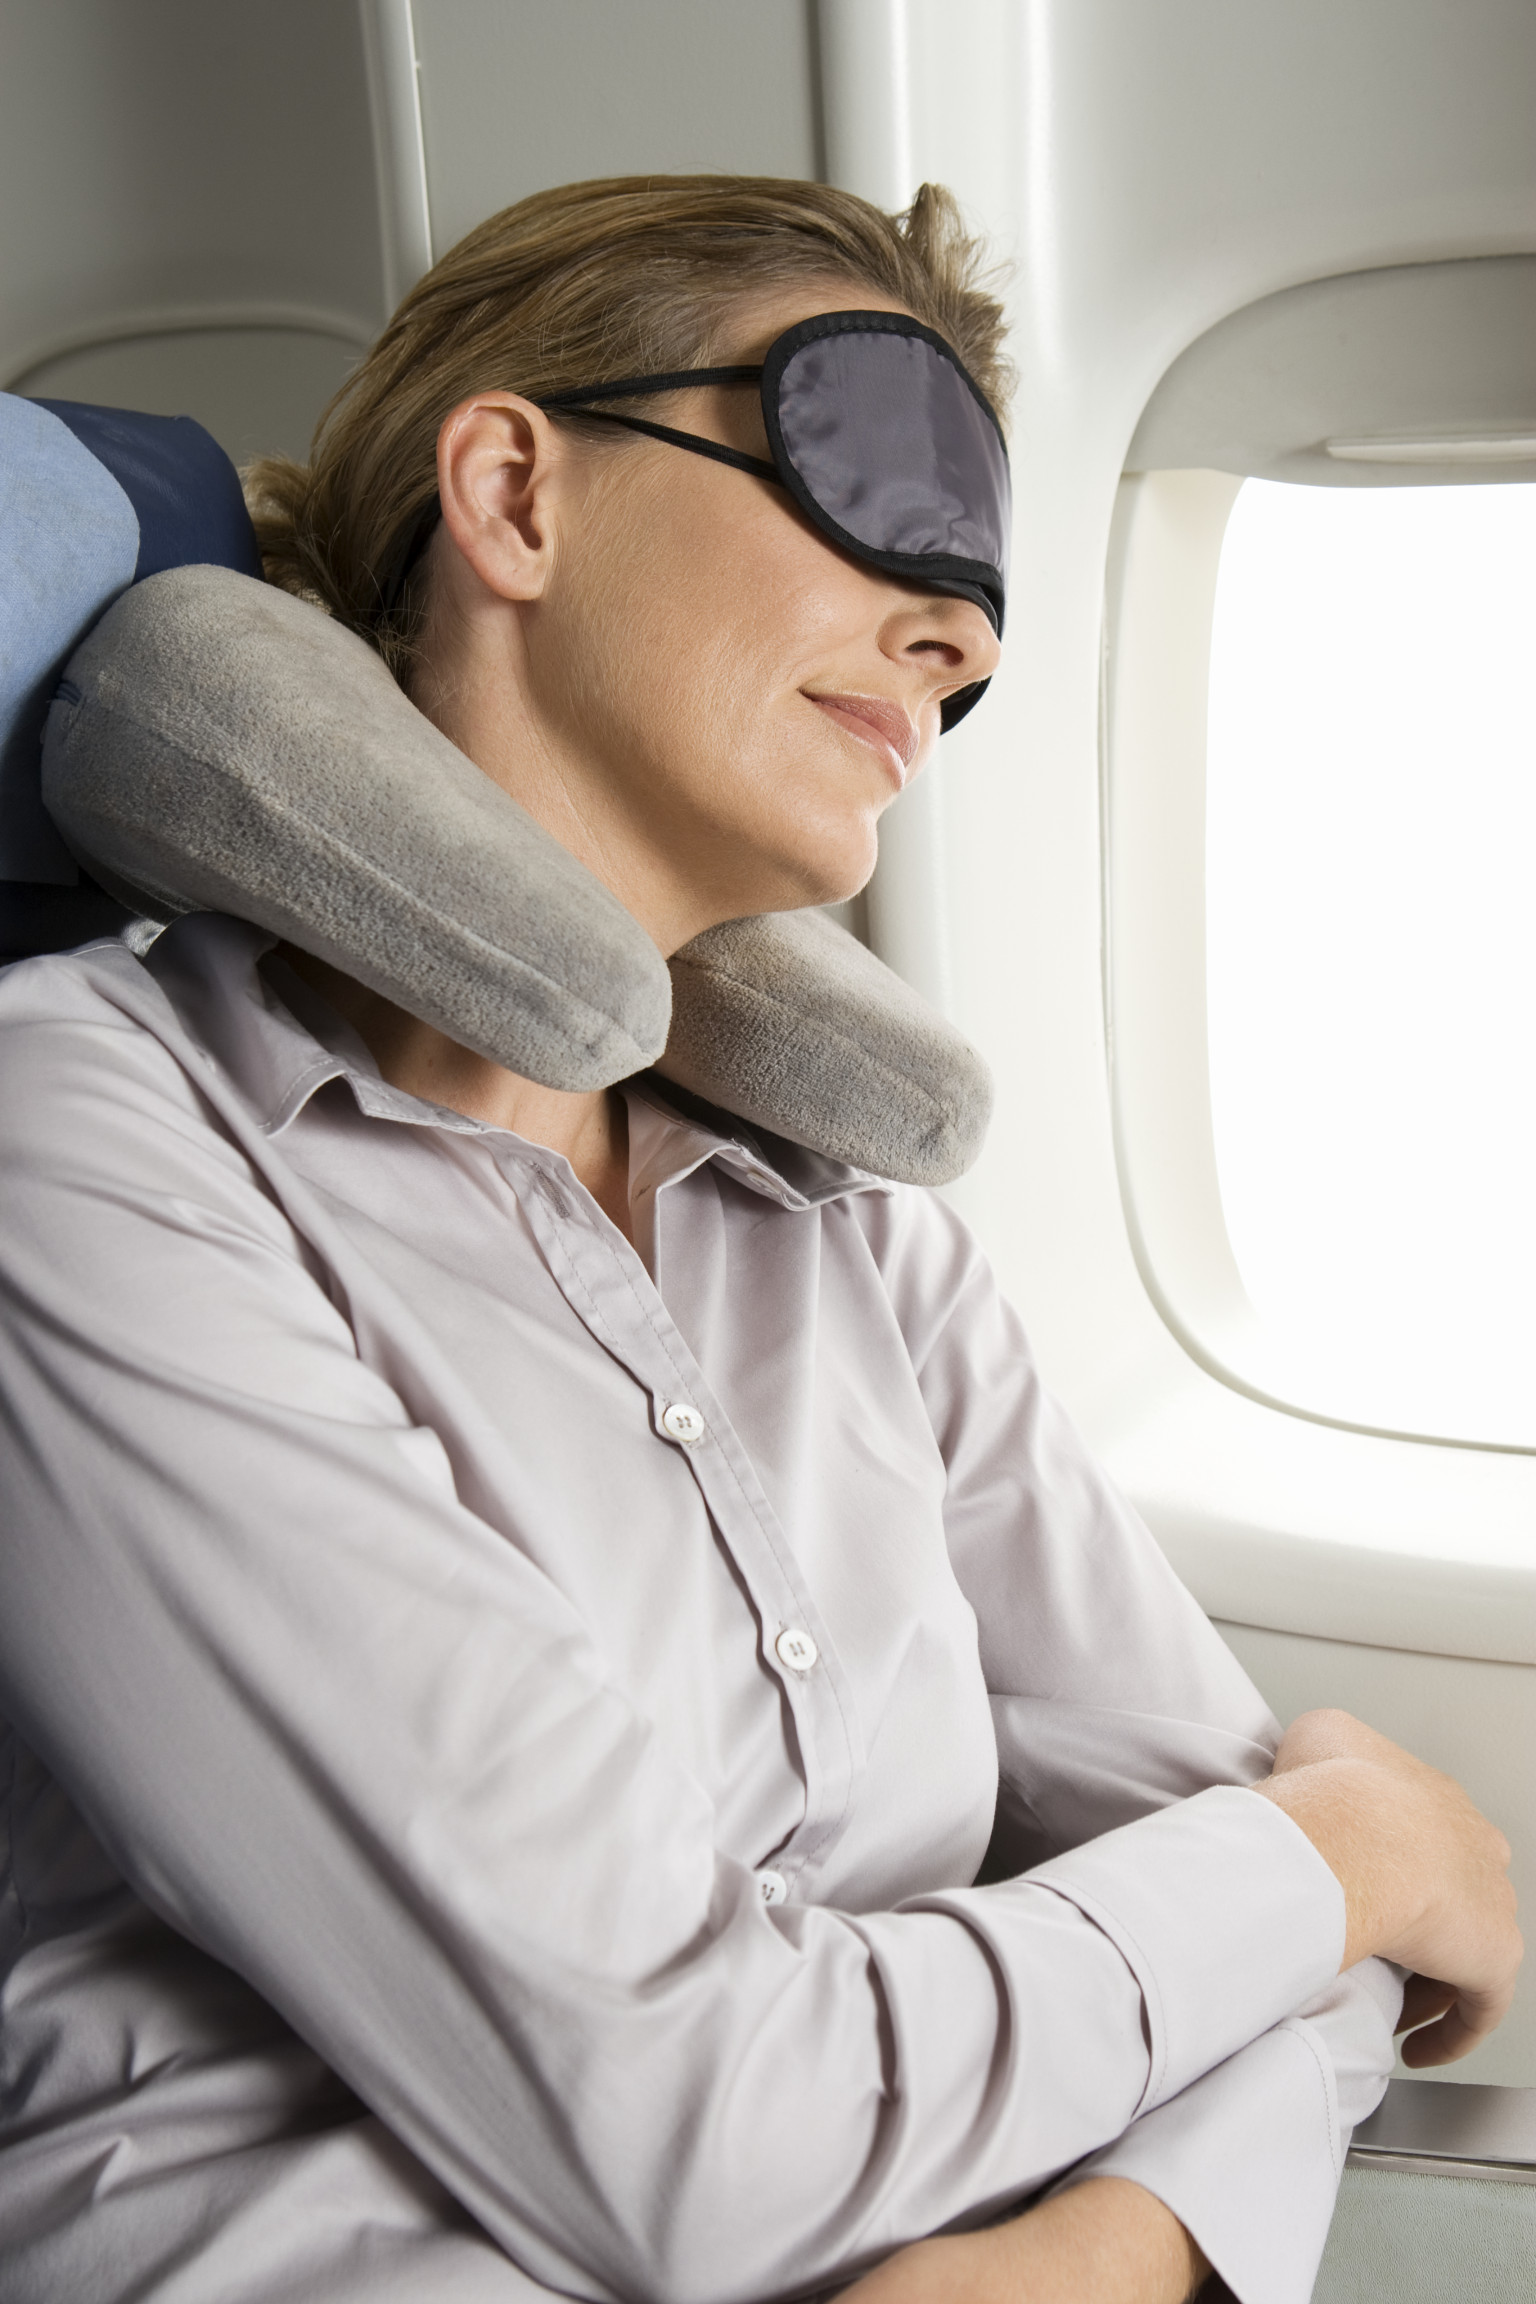 Tips to survive long haul flights